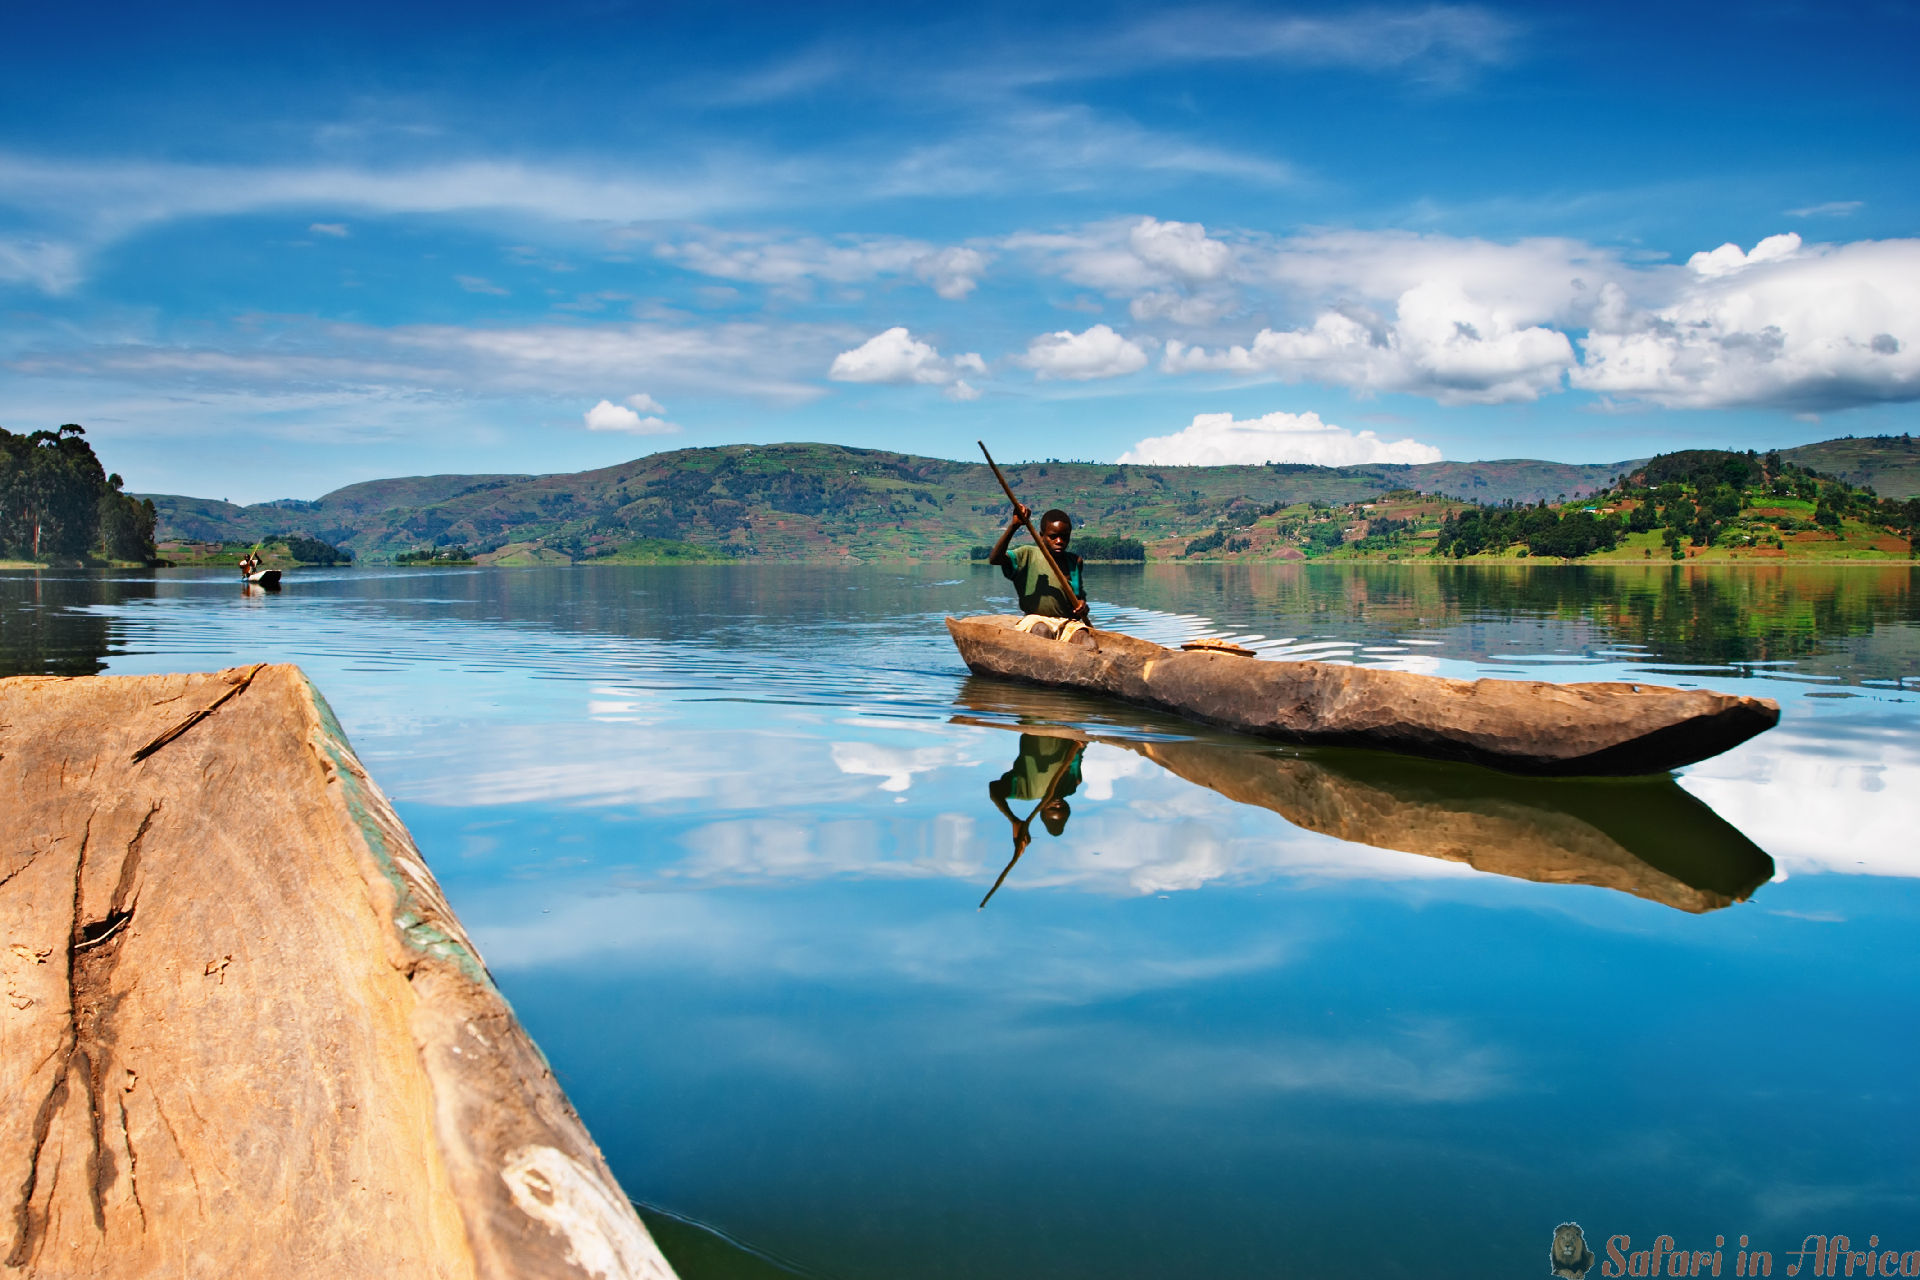 African boy in canoe, Bunyonyi lake, Uganda